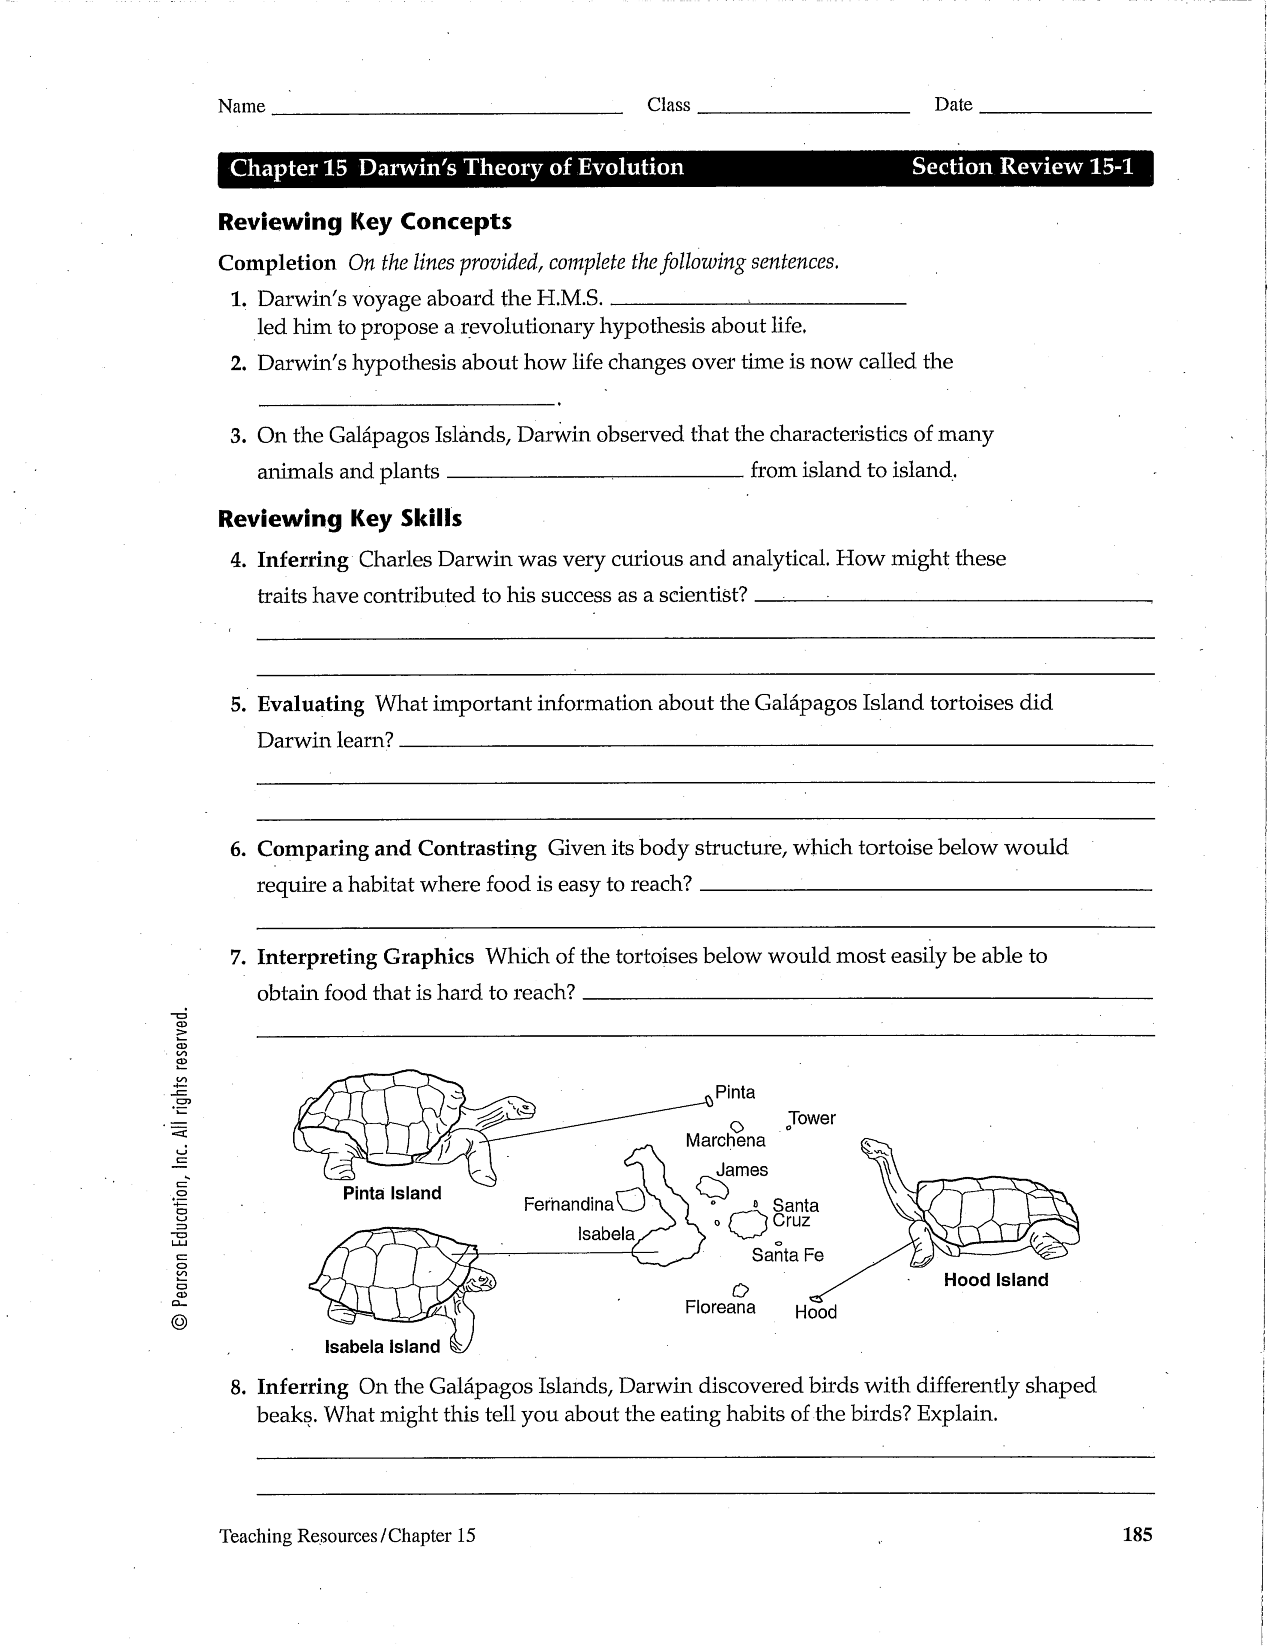 darwins theory of evolution worksheet chapter 15 darwins theory of evolution reviewing key concepts - Evolution Worksheet